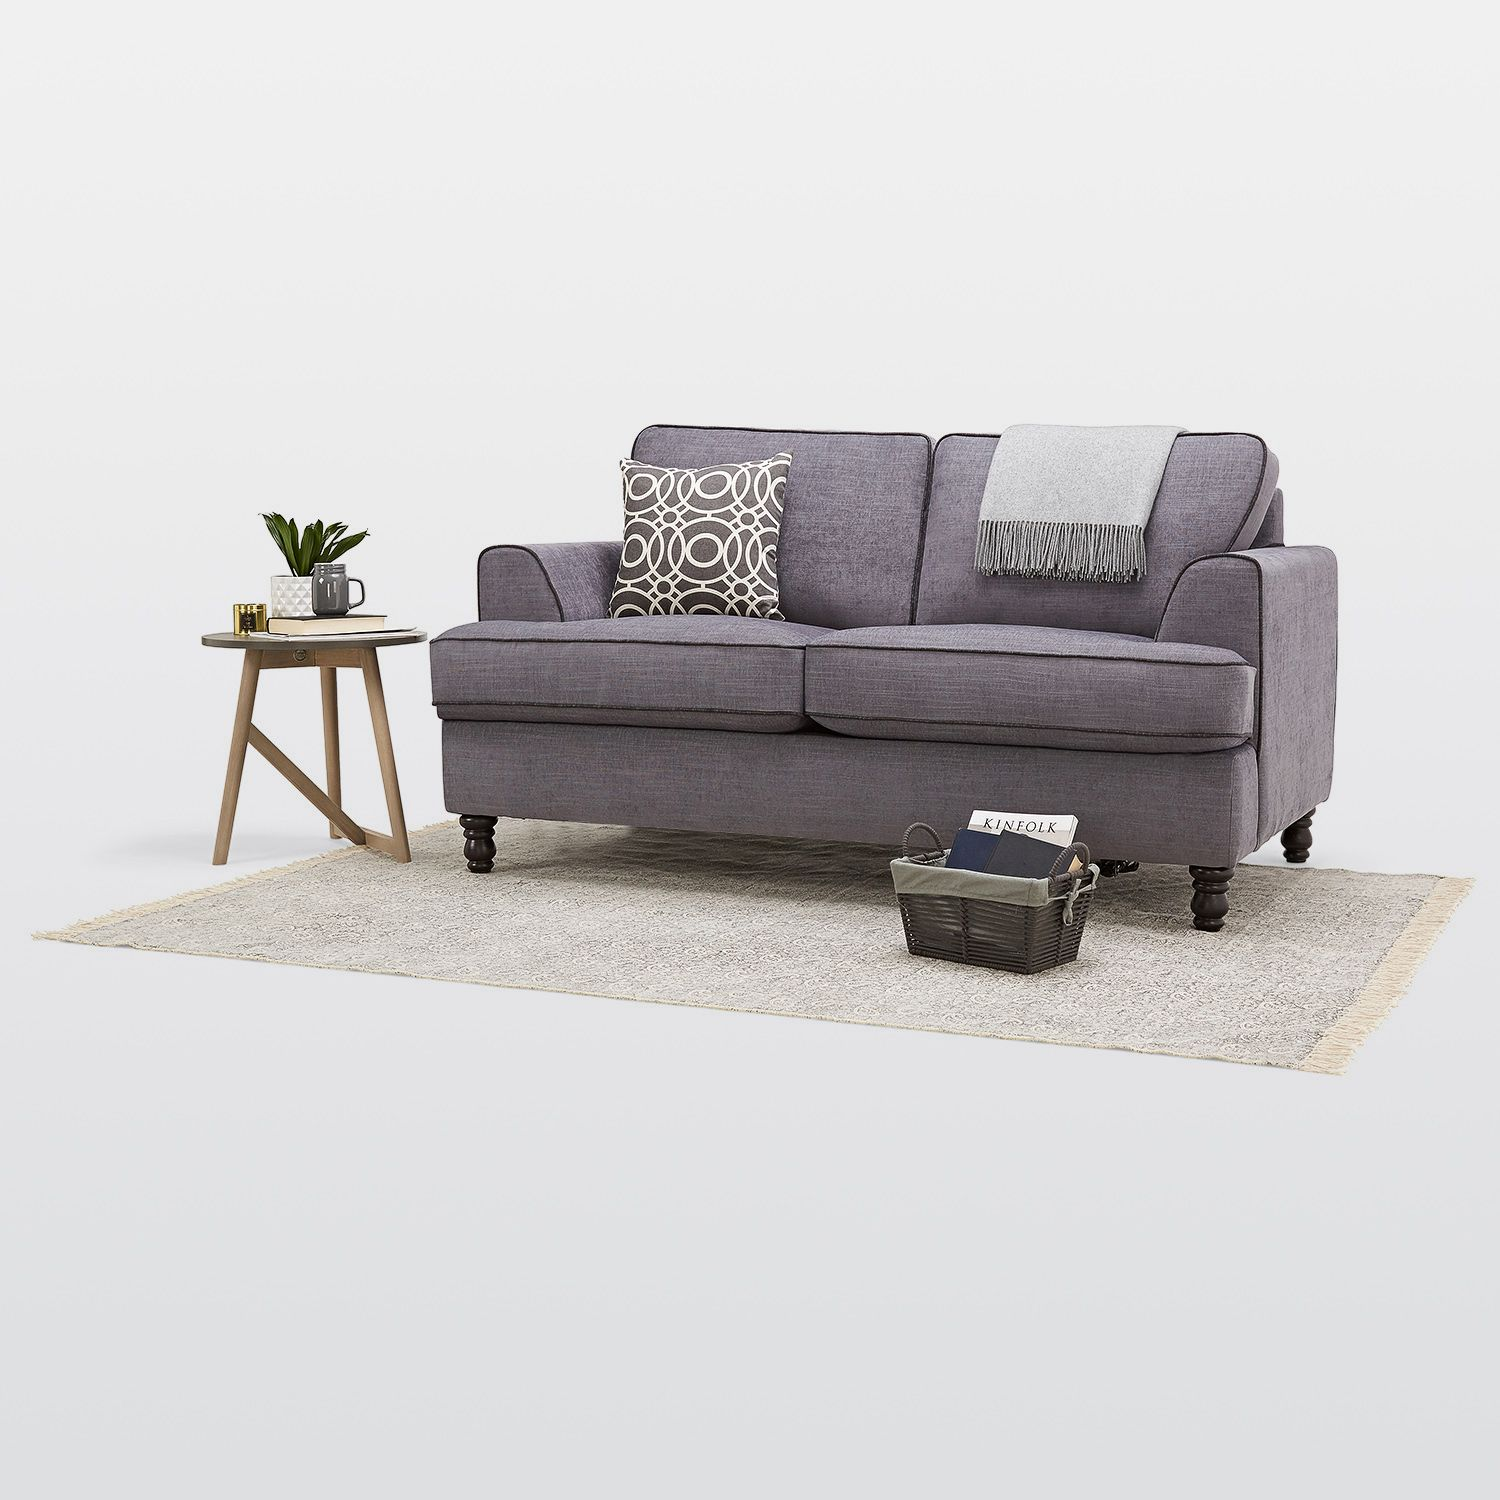 Elena Sofabed Next Day Delivery Elena Sofabed Sofa bed